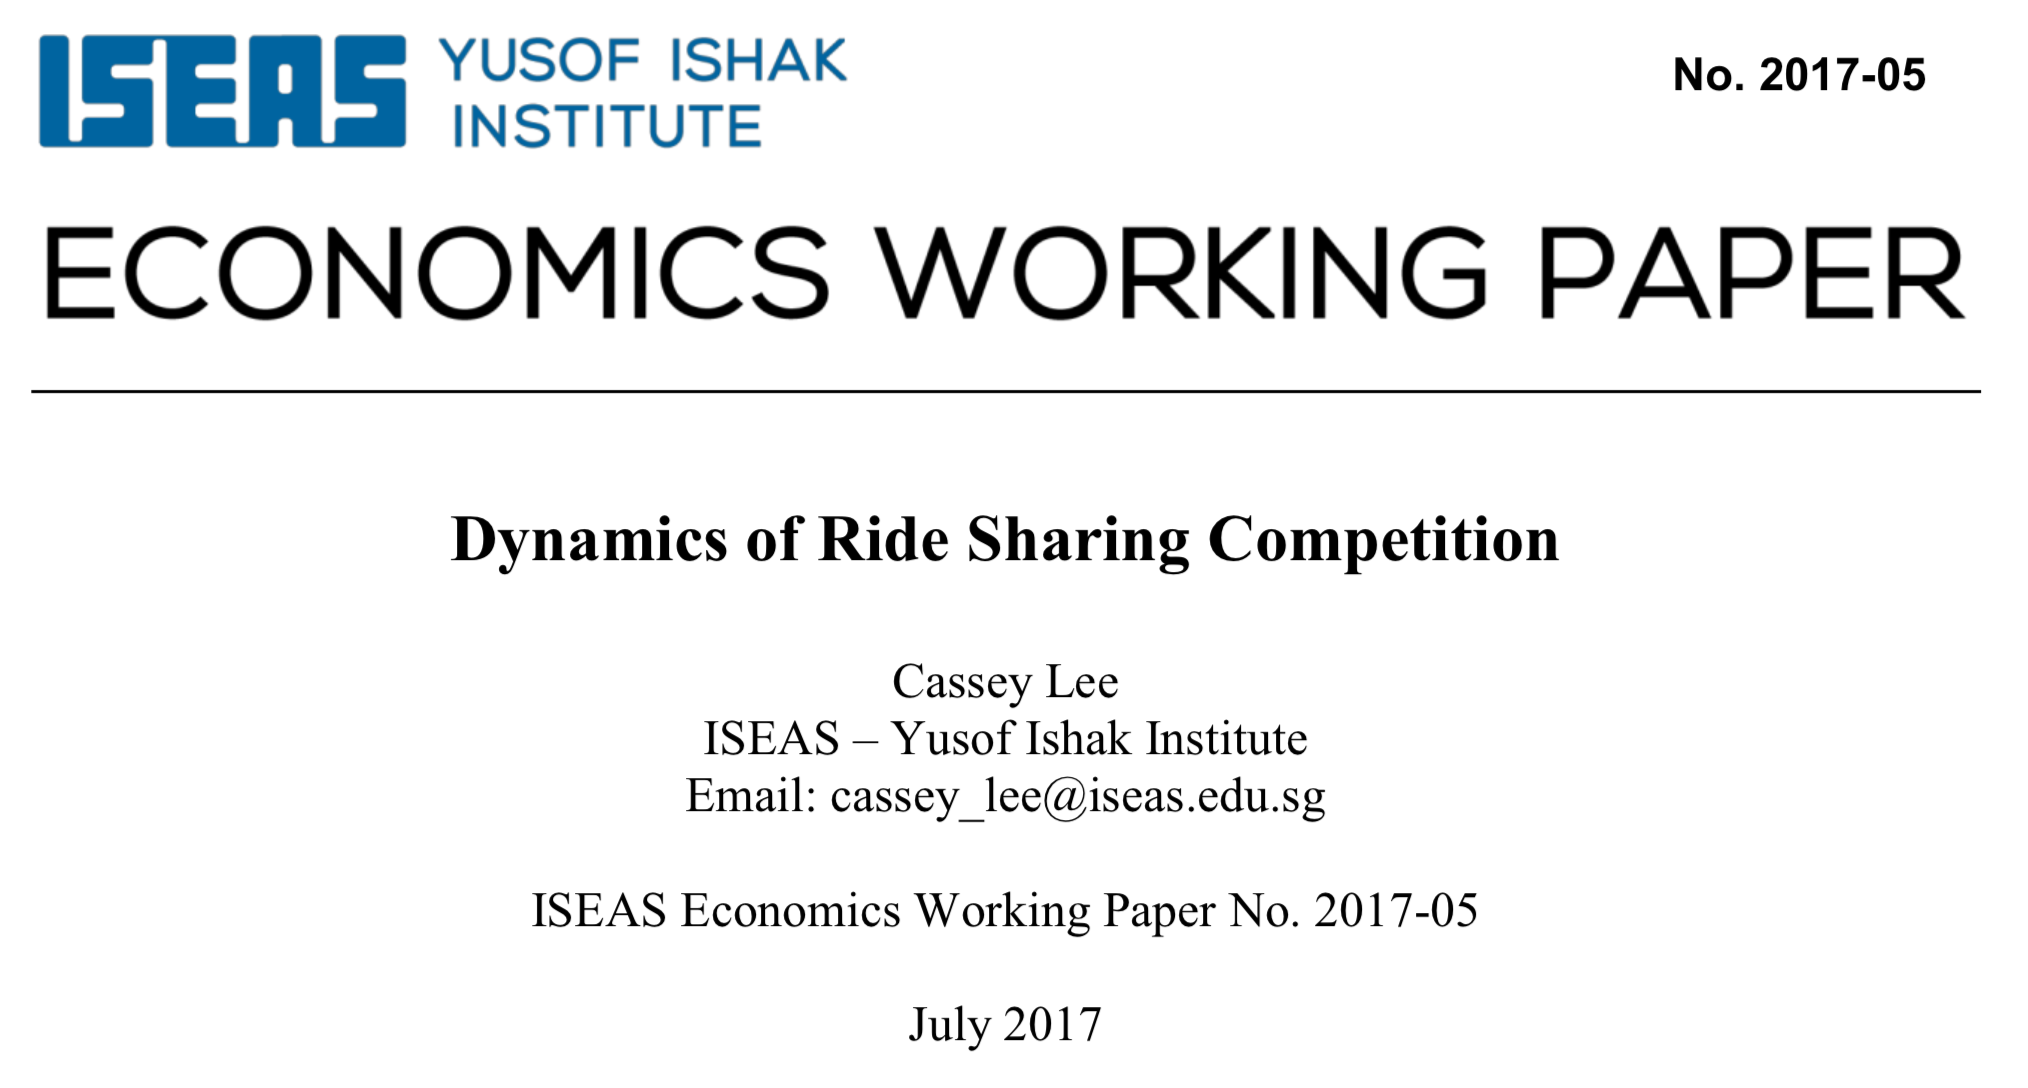 Dynamics of Ride Sharing Competition